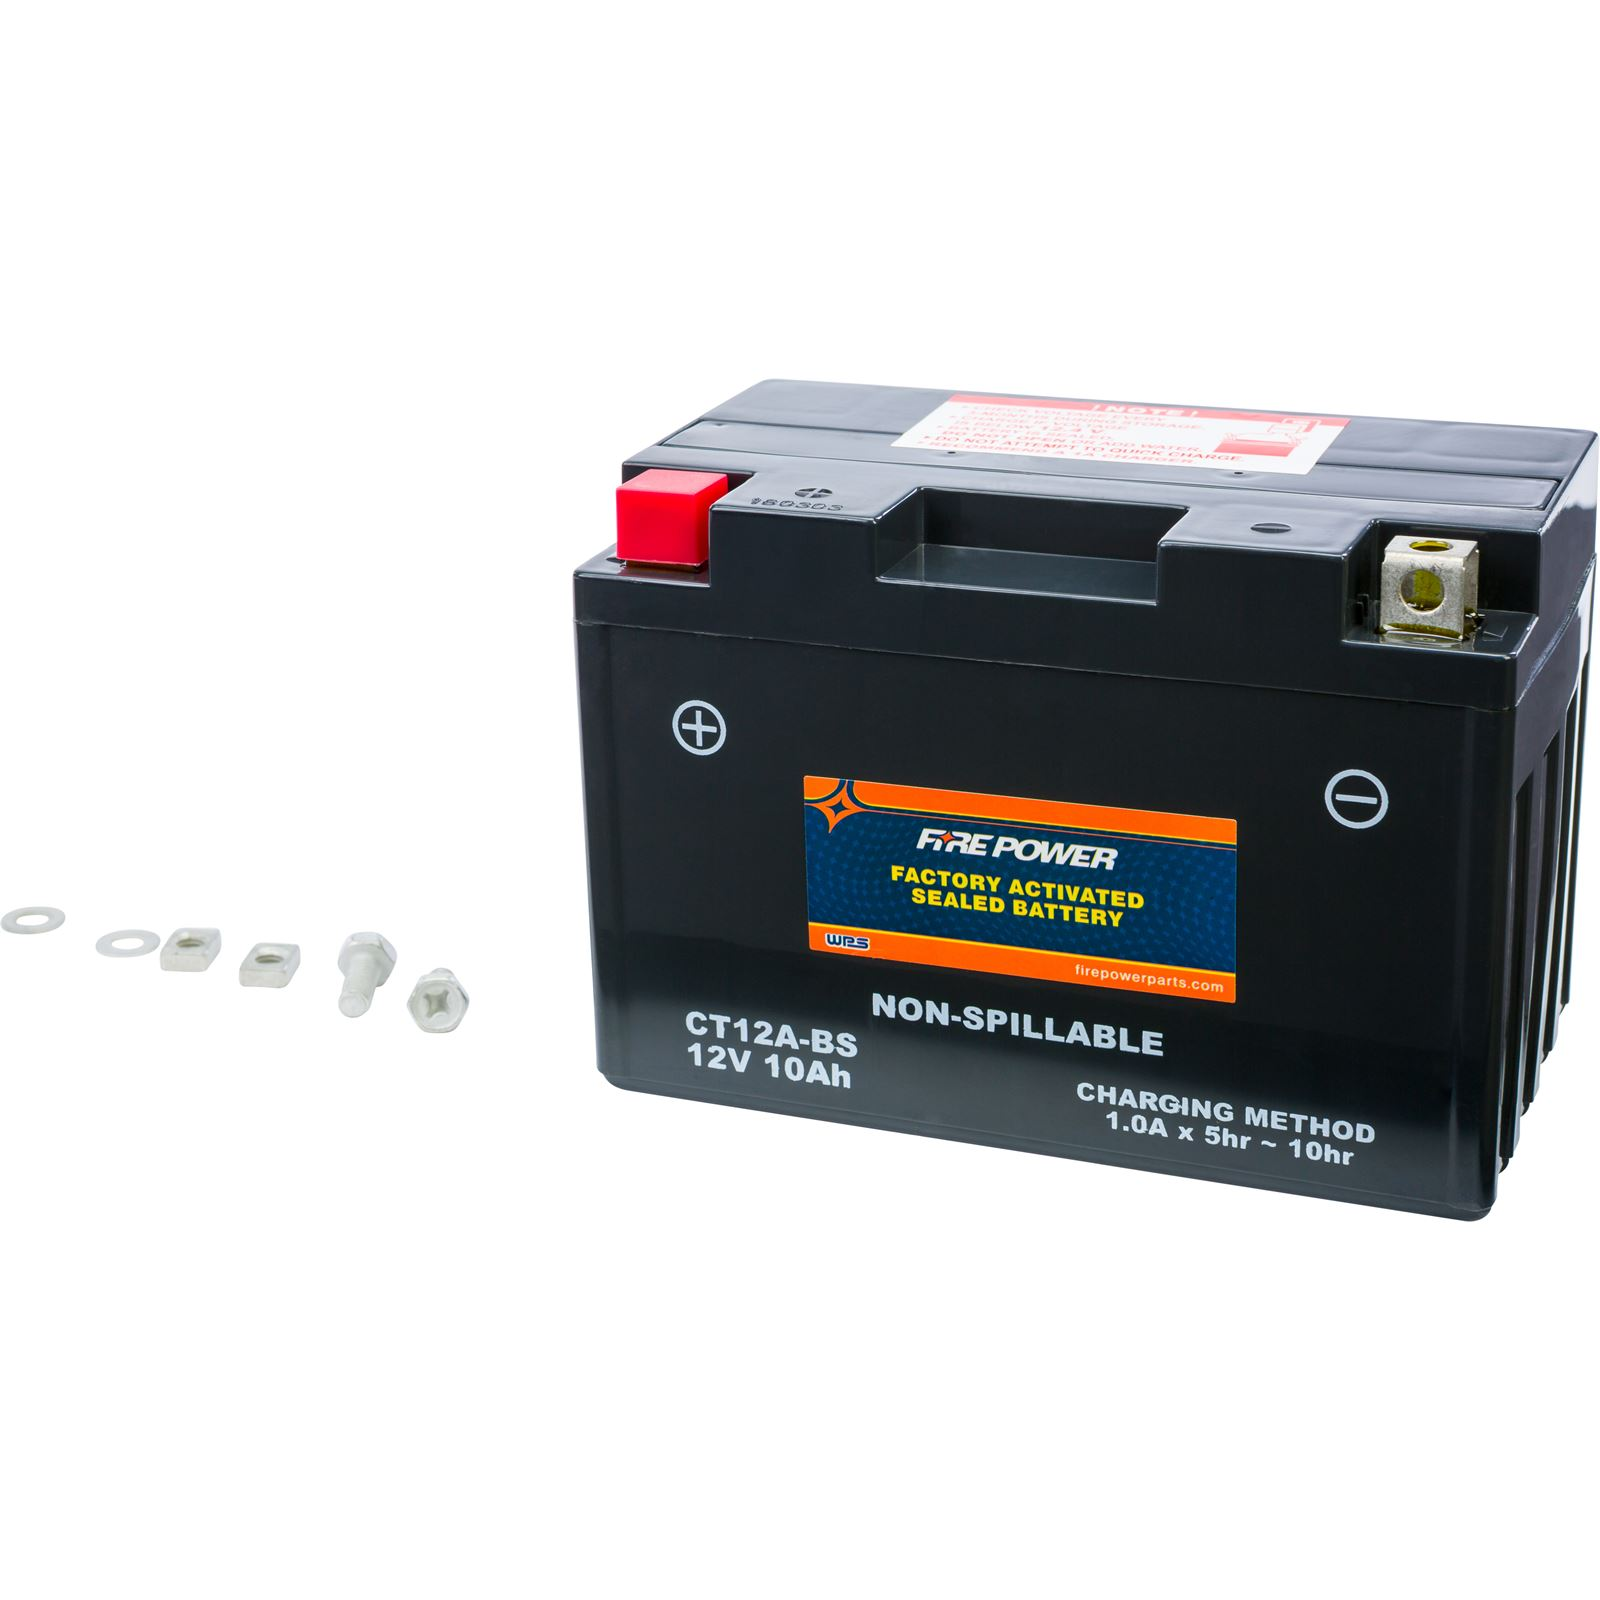 Fire Power Factory Activated Sealed Battery